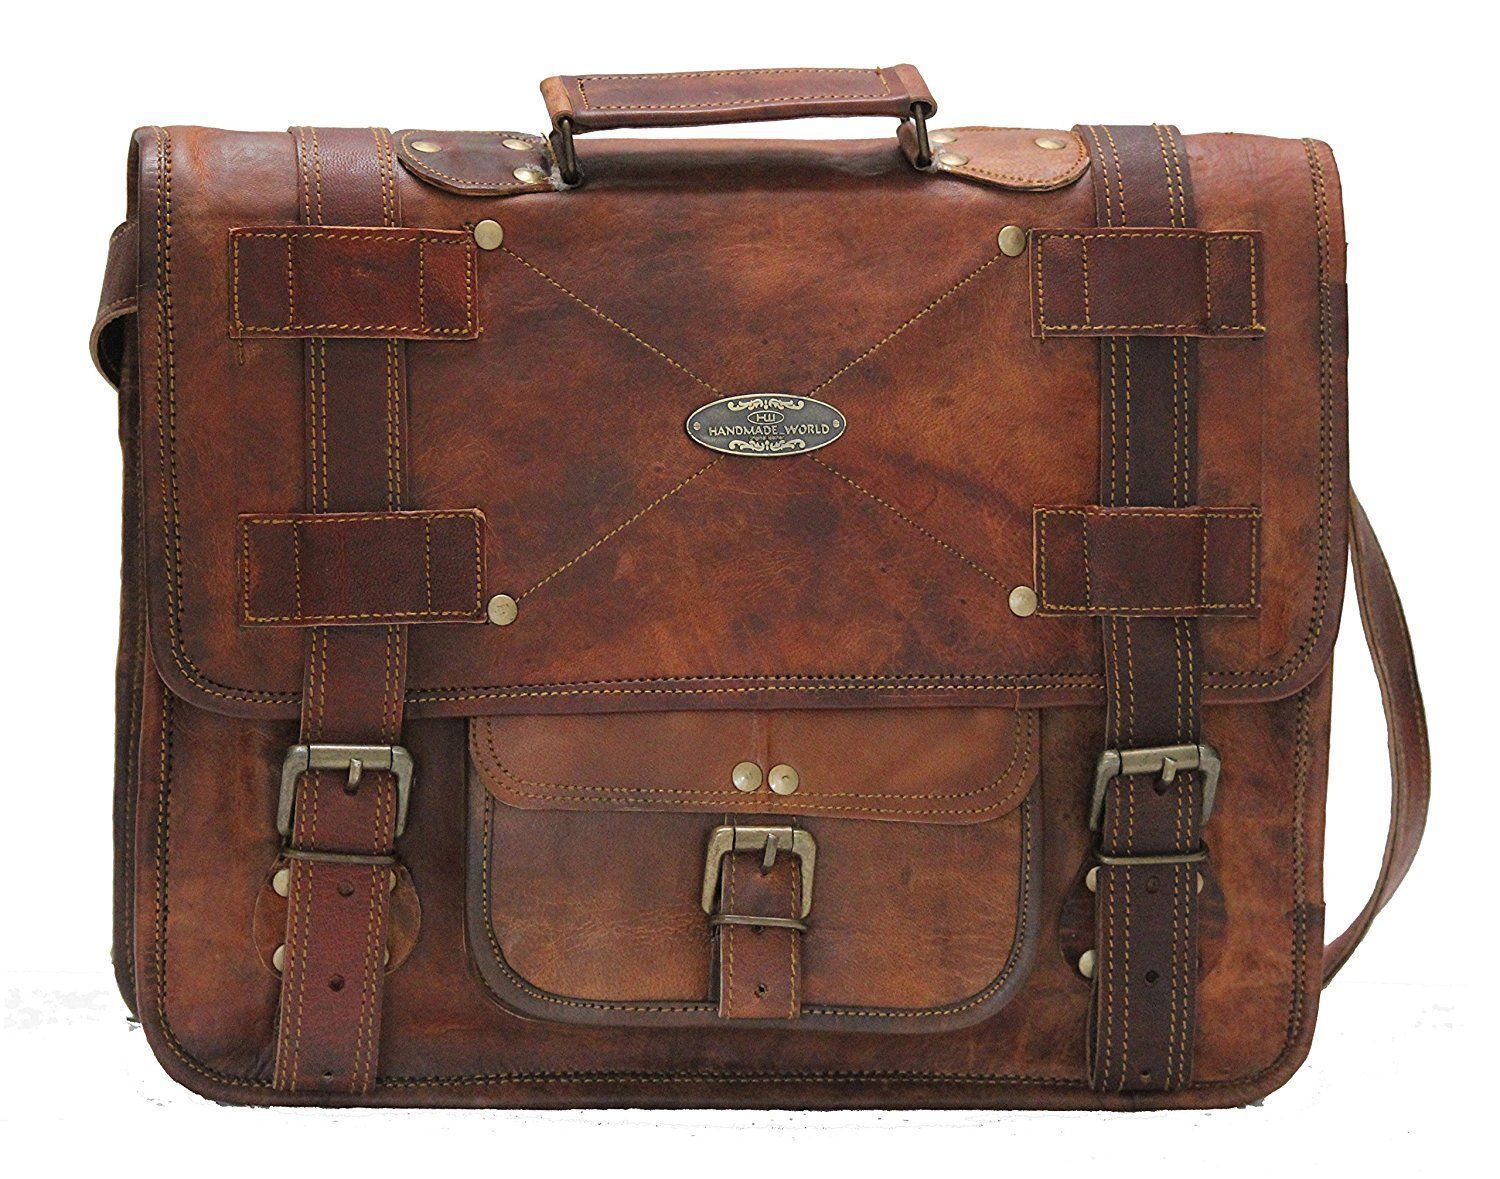 Men's Leather Messenger Shoulder Briefcase Bag For Business Work Office Use